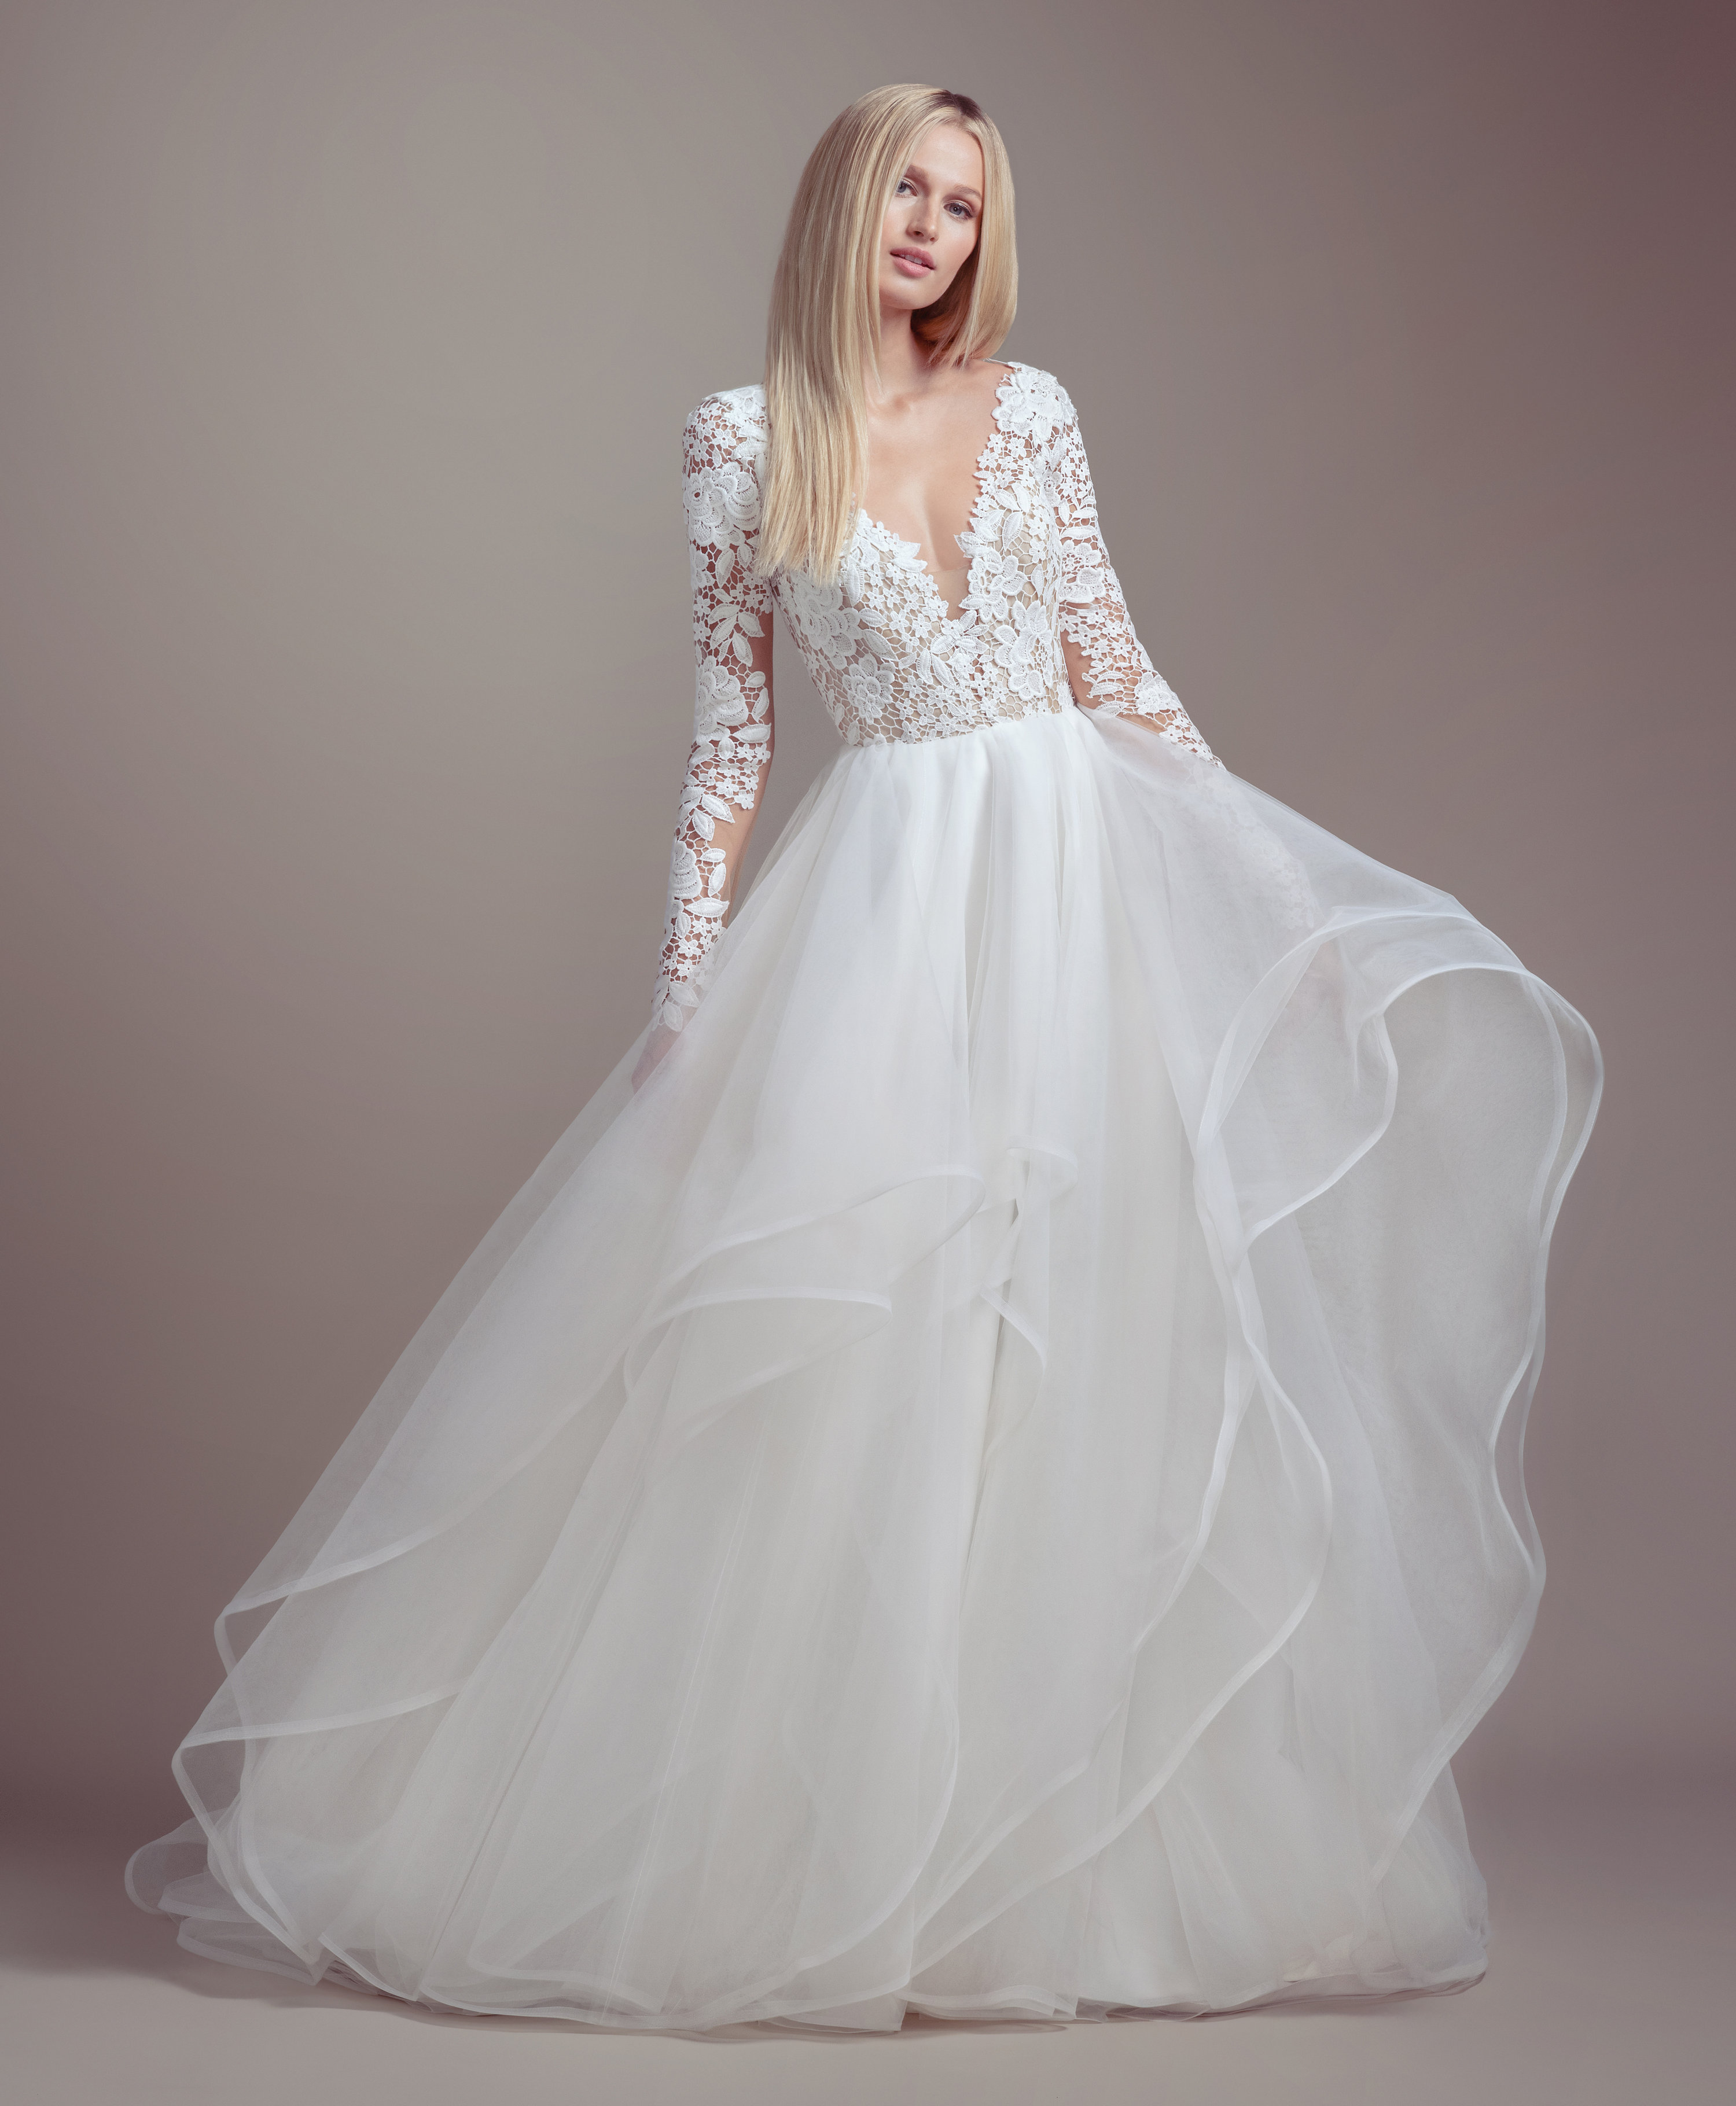 948ecc0945bf Bridal Gowns and Wedding Dresses by JLM Couture - Style 1907 Praise